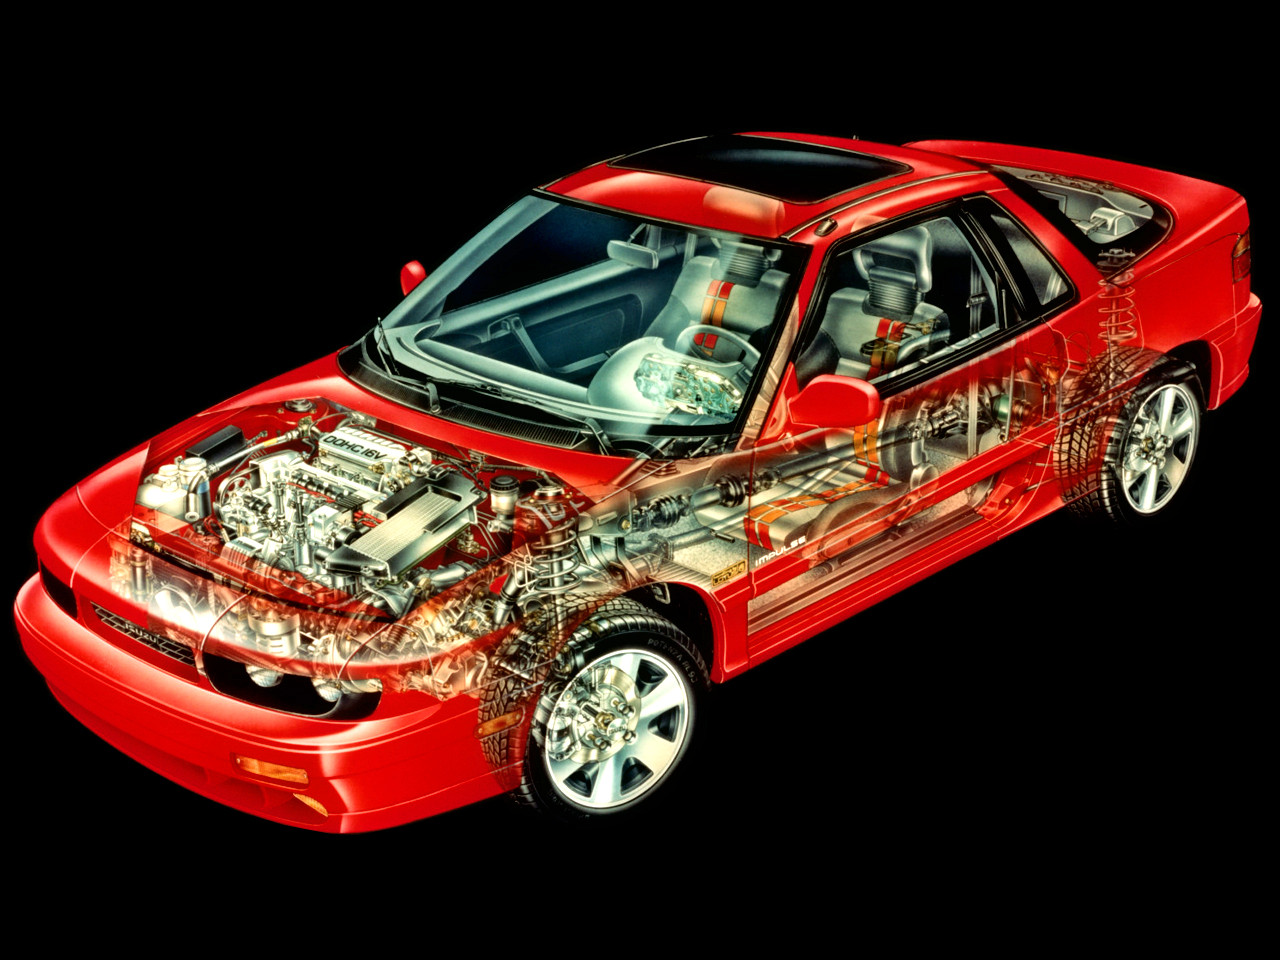 [Image: isuzu_impulse_rs.jpg]